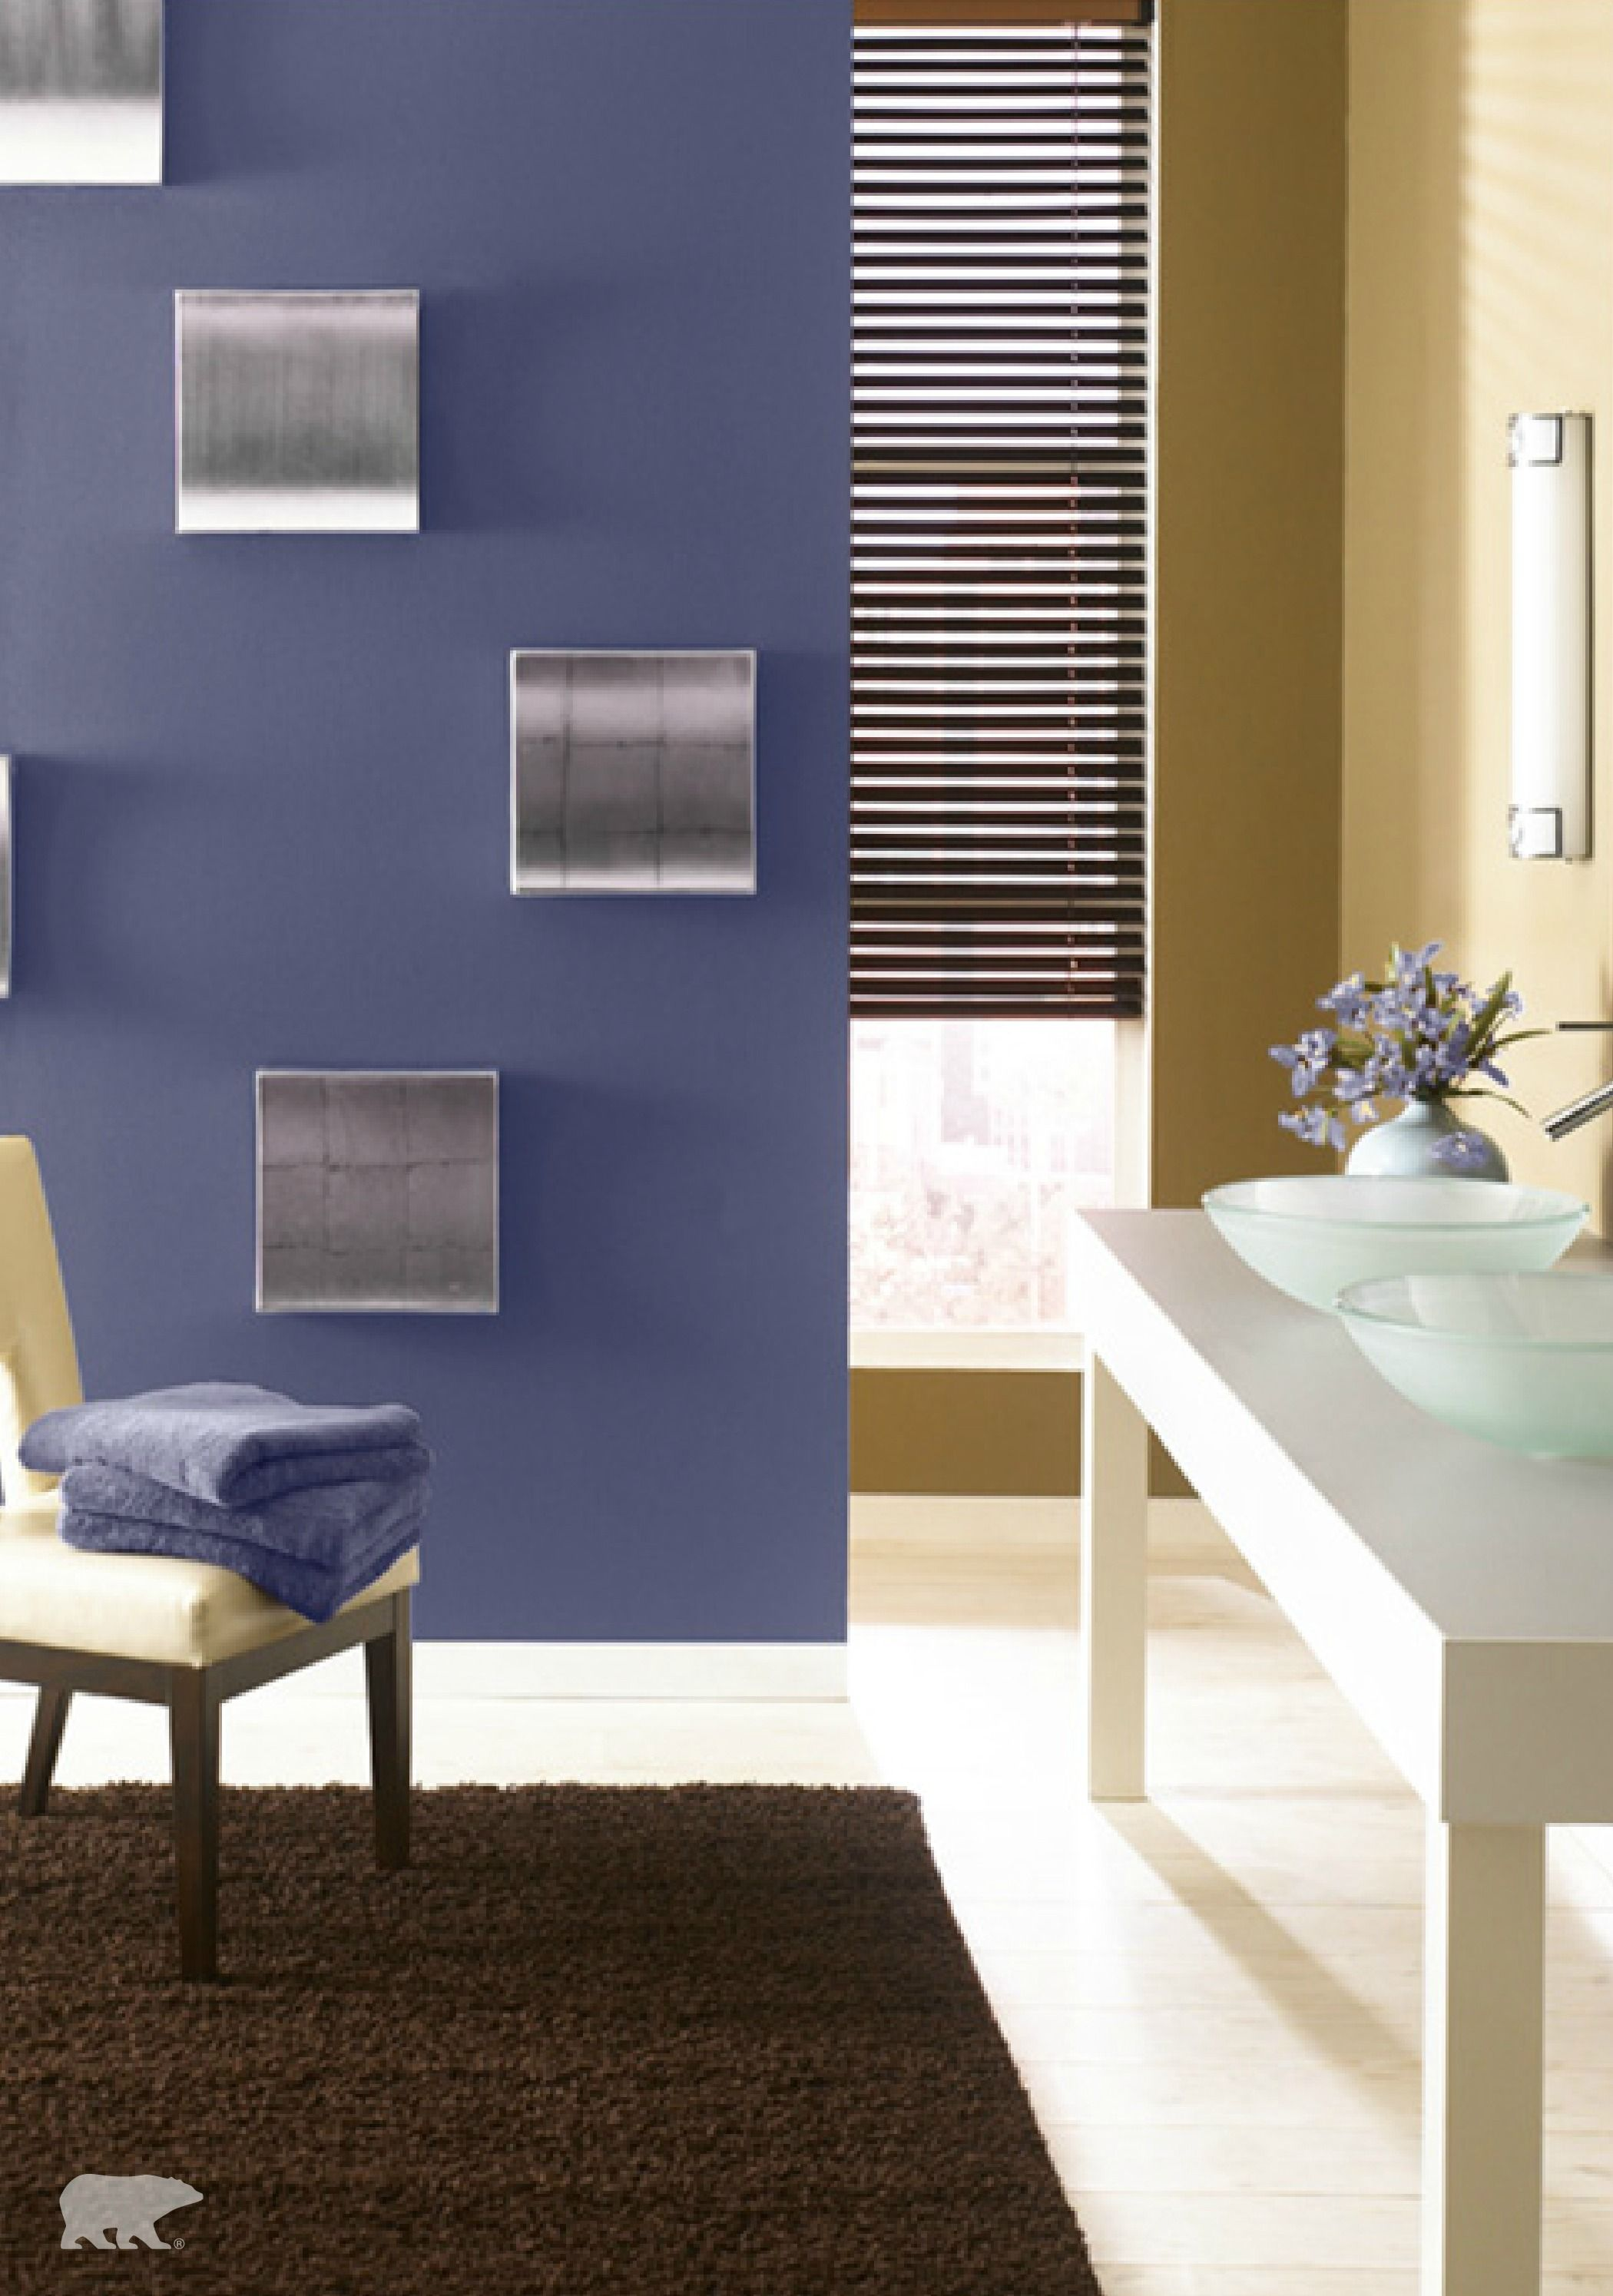 Relaxing Bathroom Colors: Modern, Sophisticated, Simple. Who Doesn't Love Describing